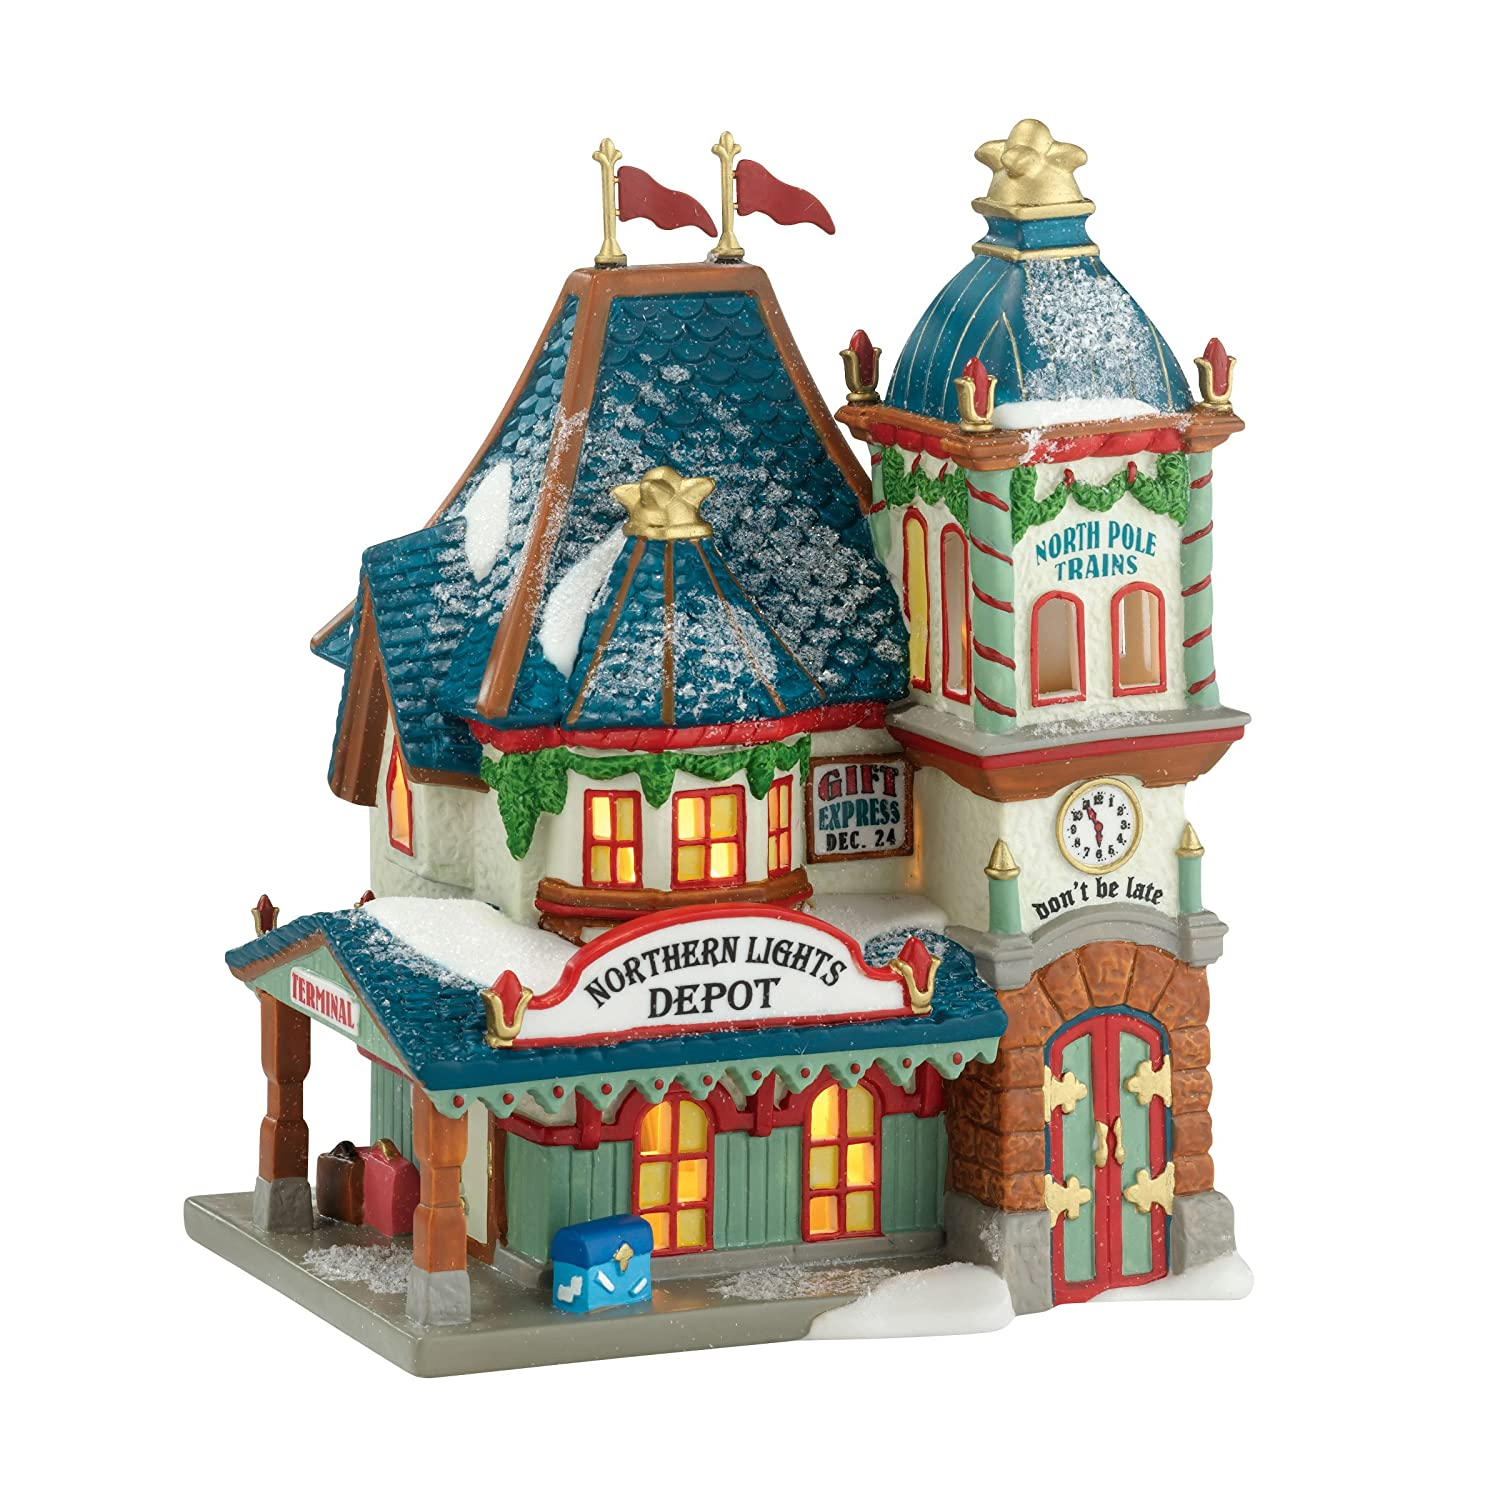 Department 56 North Pole Series Village Northern Lights Depot Lit House, 7.7-Inch 4030713